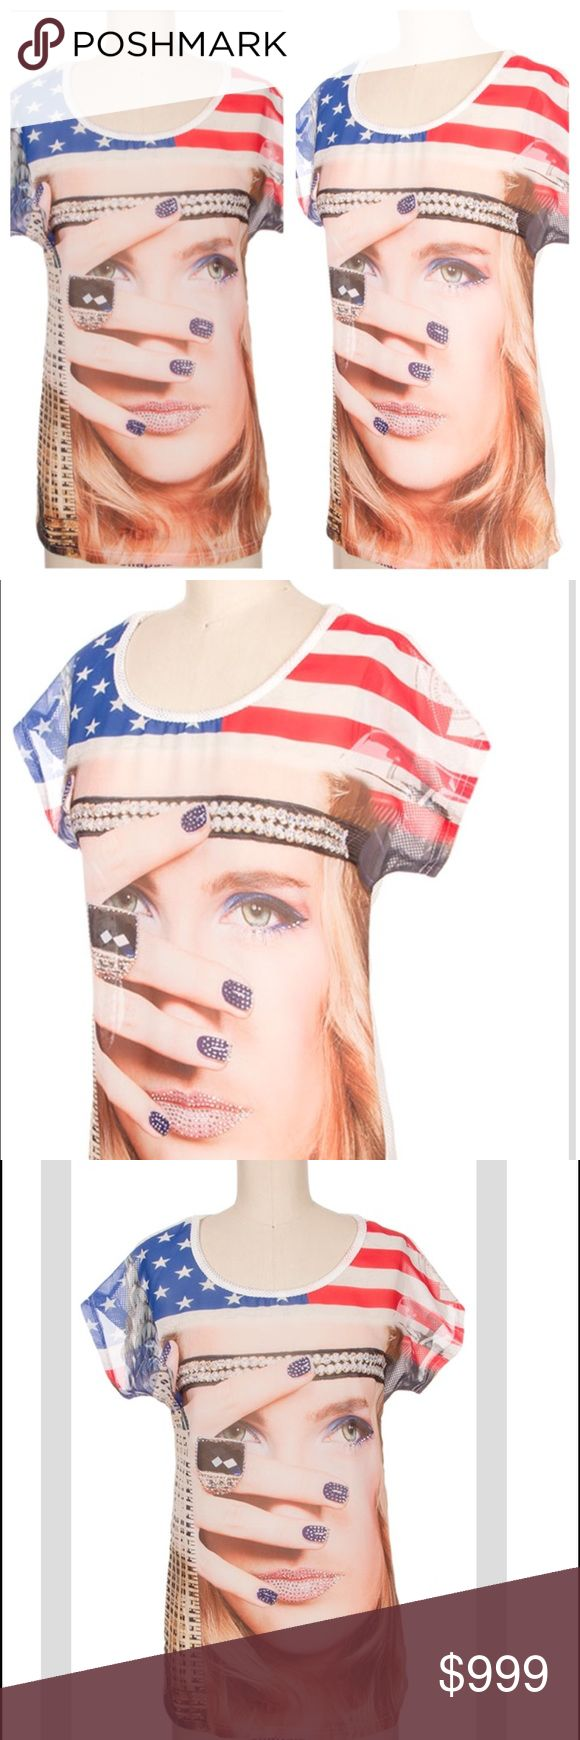 🆕Lots of Bling Patriotic Graphic Tee Beautiful design in the front with actual stick out bling stones on lips, fingernails, ring, and eyeliner. The front is made out of see through fabric see the last picture. The back of the shirt is white and perforated completely. This is a great festival shirt and great for Memorial and 4th of July. Size S, M, L This is a very stunning shirt very vibrant. Evolve Always Tops Tees - Short Sleeve